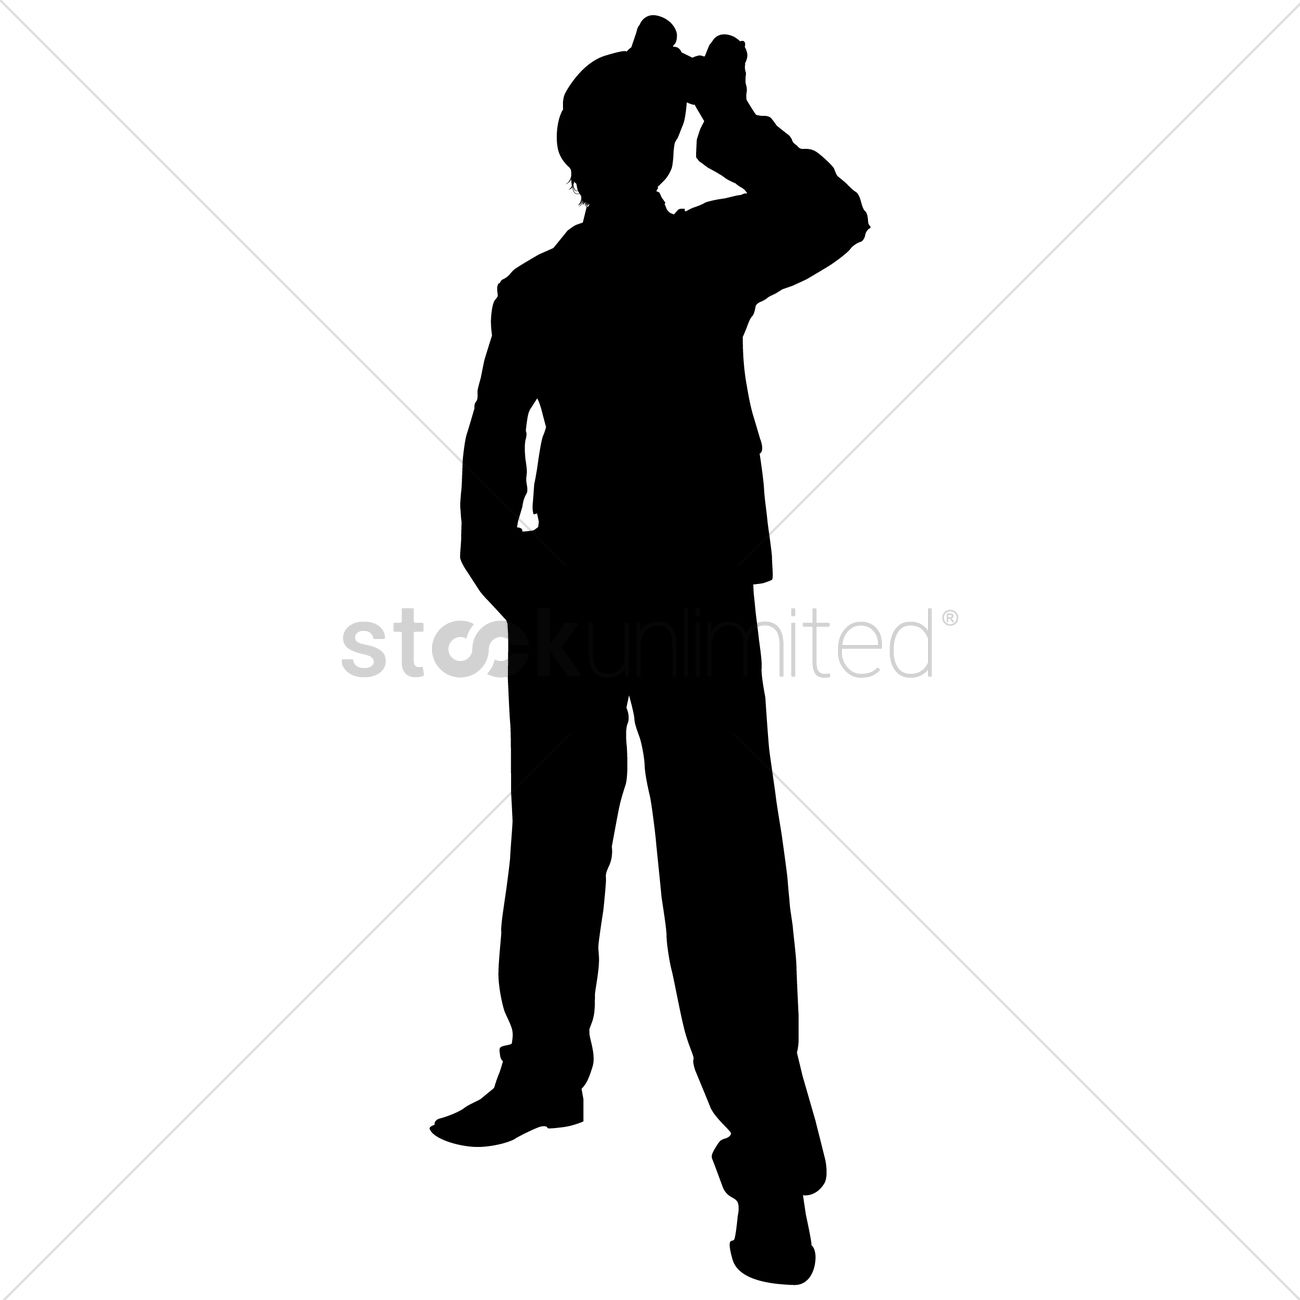 1300x1300 Silhouette Of A Man With Binoculars Vector Image